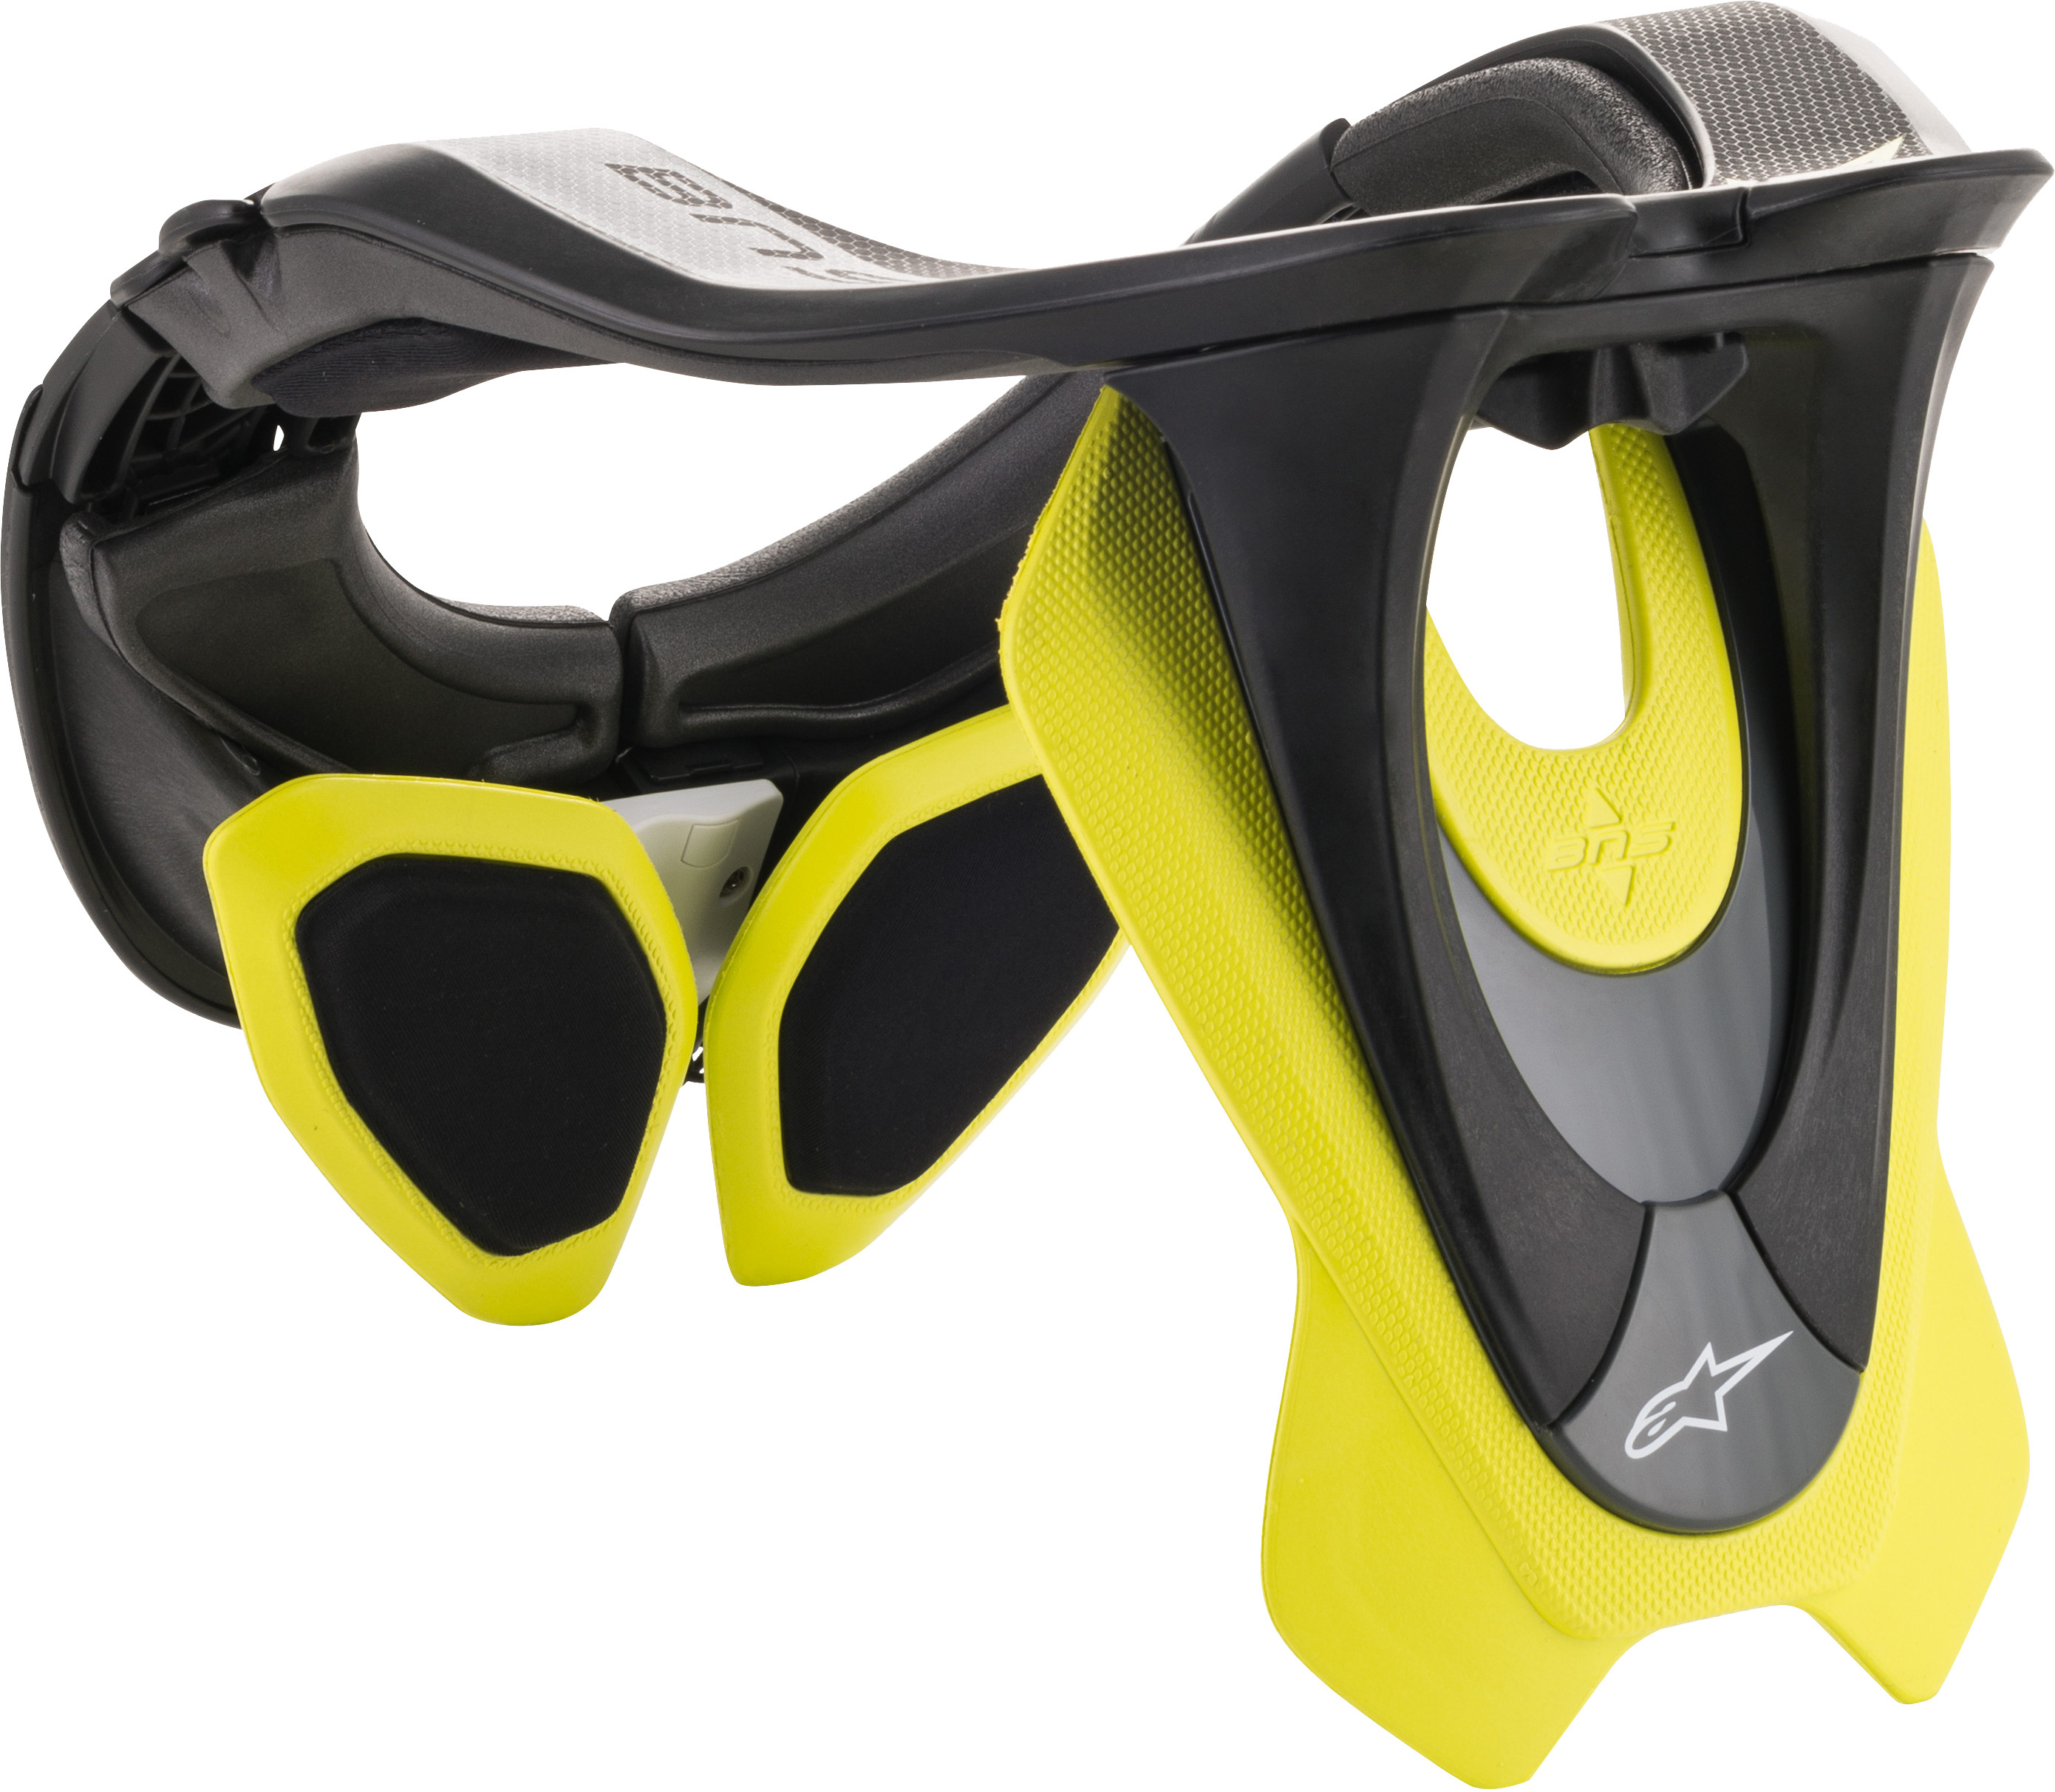 Alpinestars Bionic Neck Support Black//Yellow XS-Md 6500019-155-XS//M